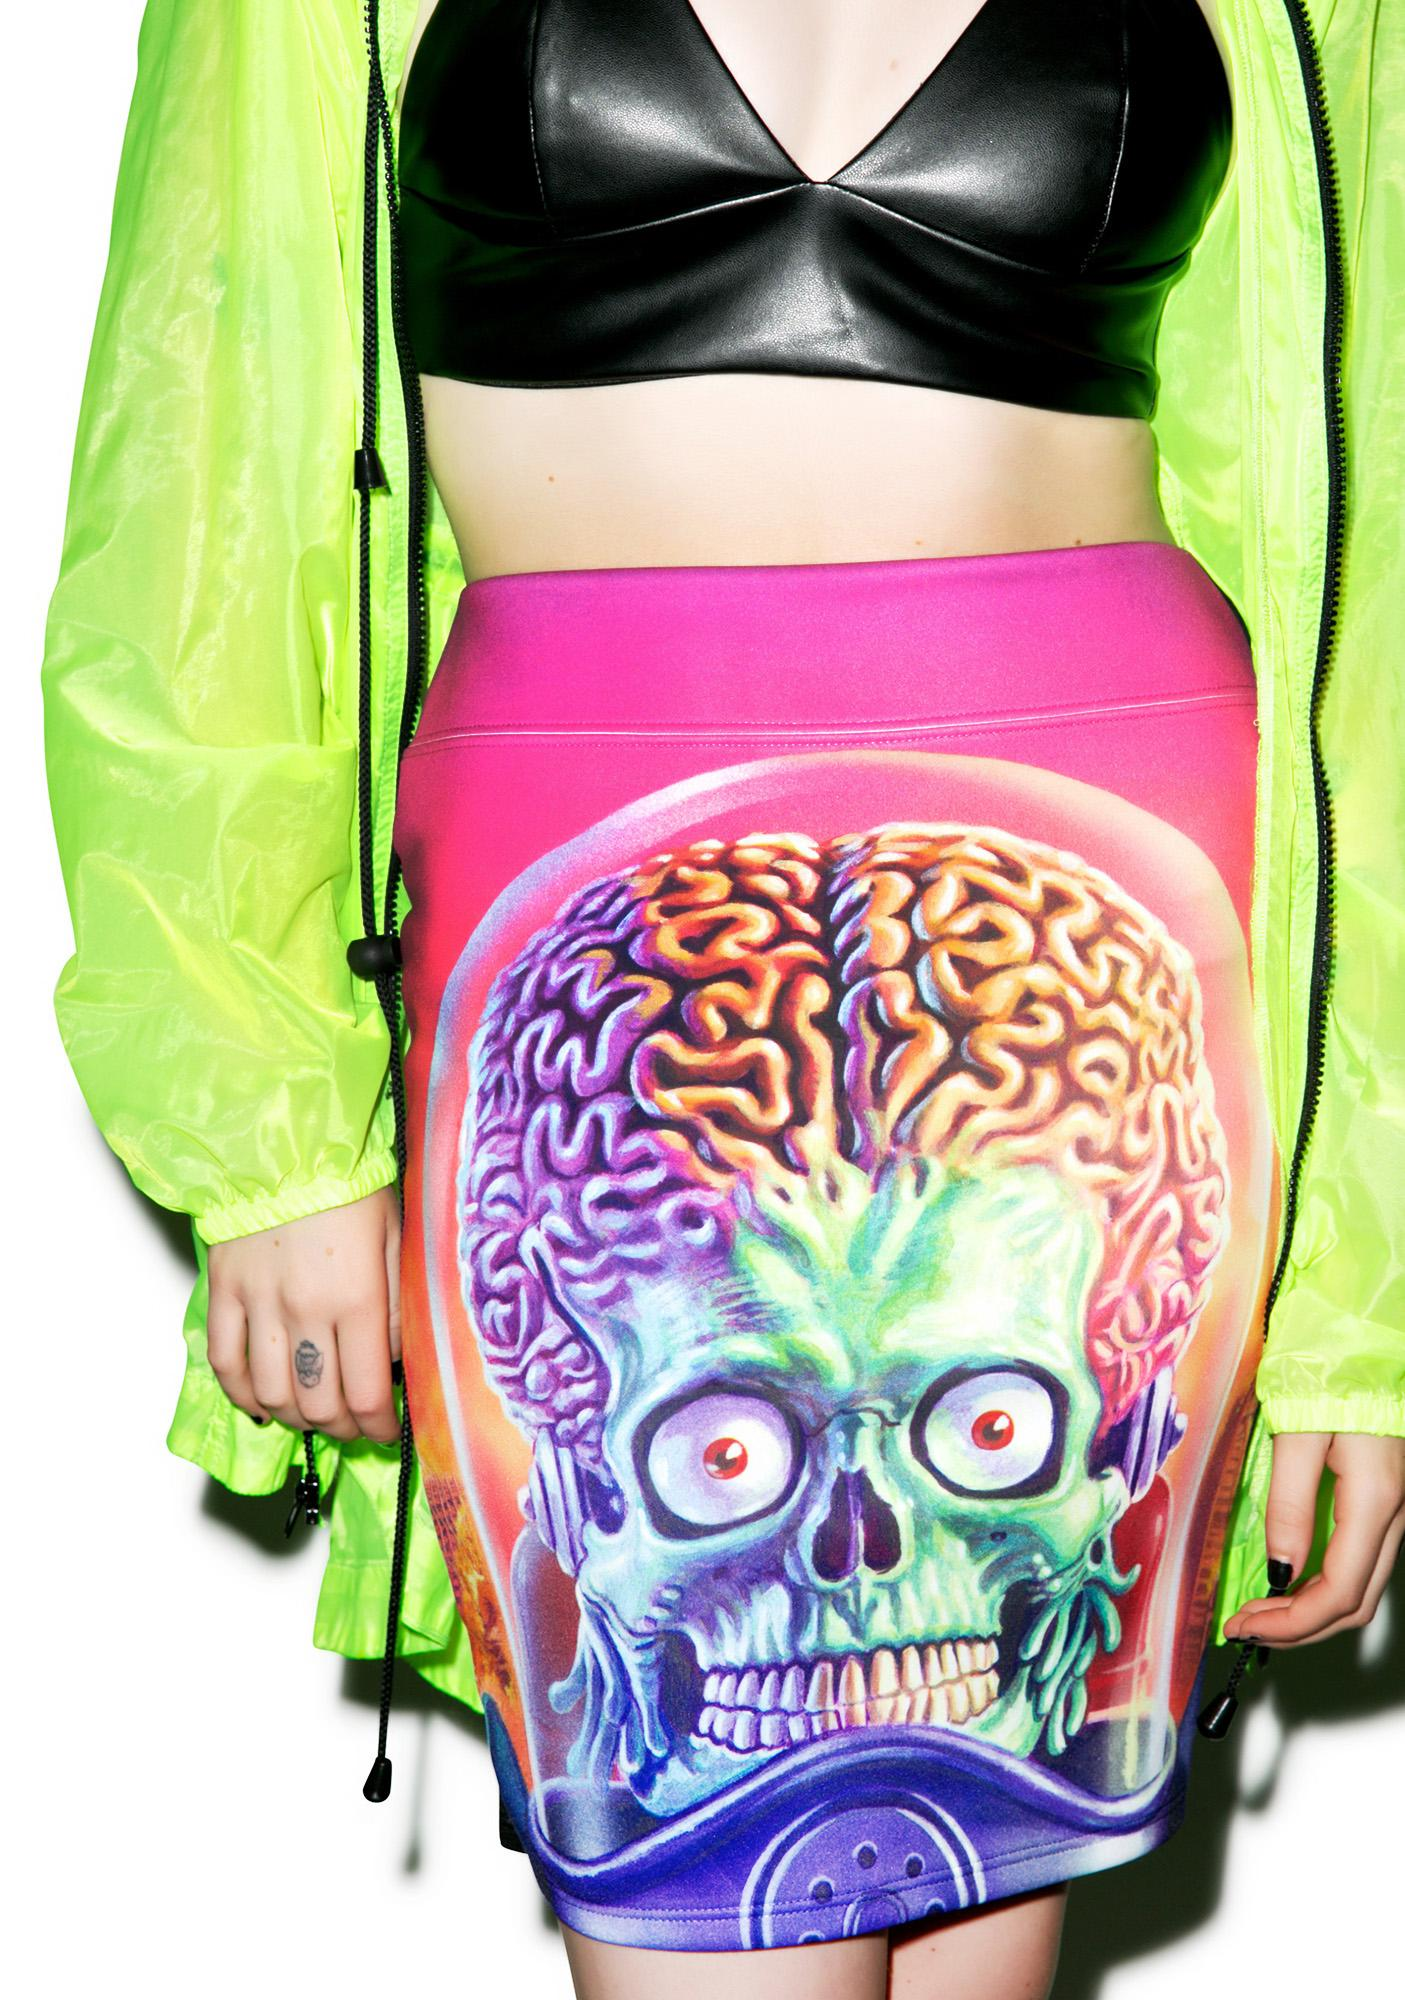 Kreepsville 666 Mars Attacks Full Battle Pencil Skirt